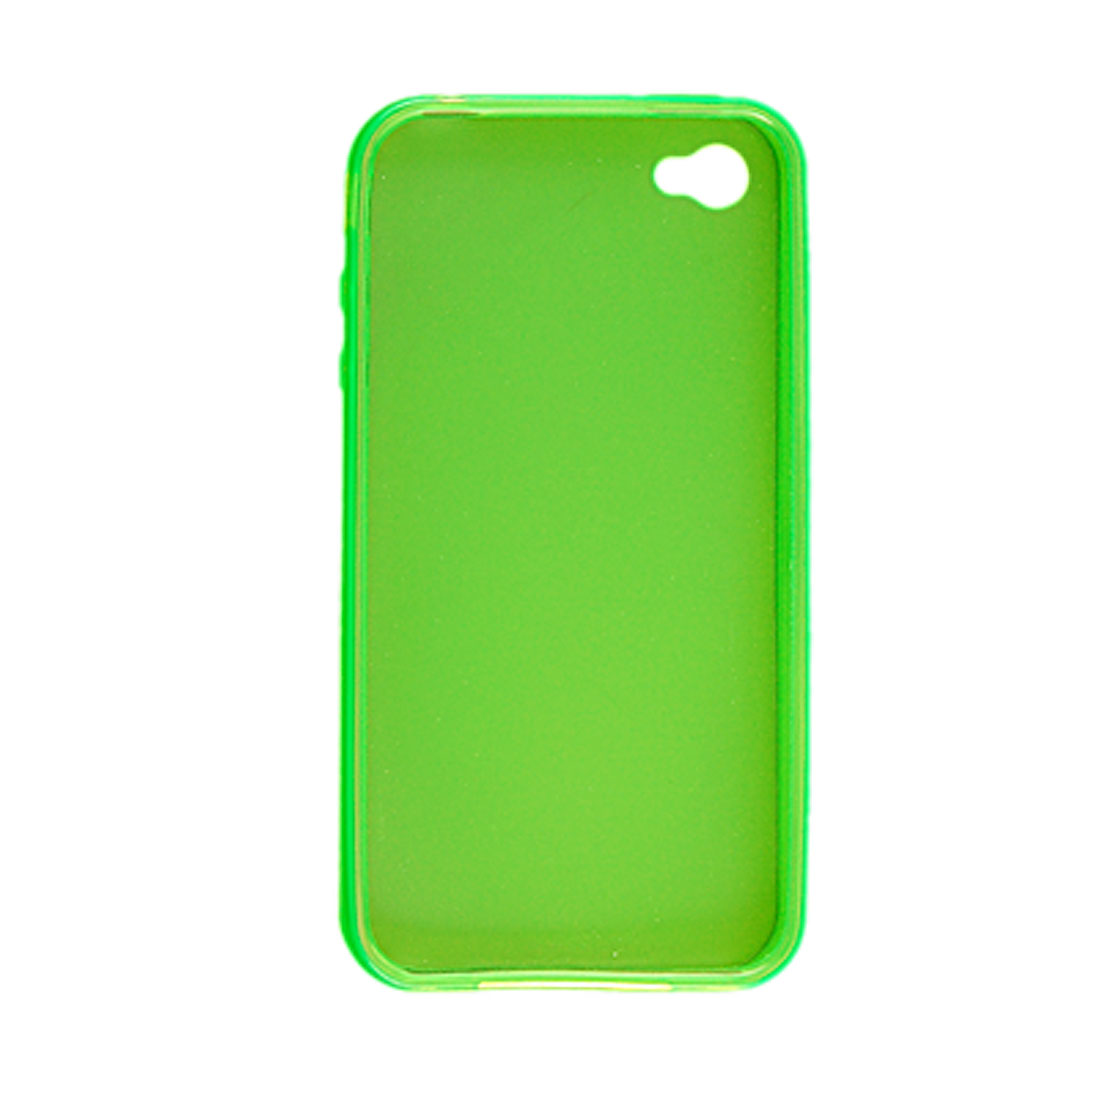 Light Green Clear Soft Plastic Case Cover for Apple iPhone 4 4G